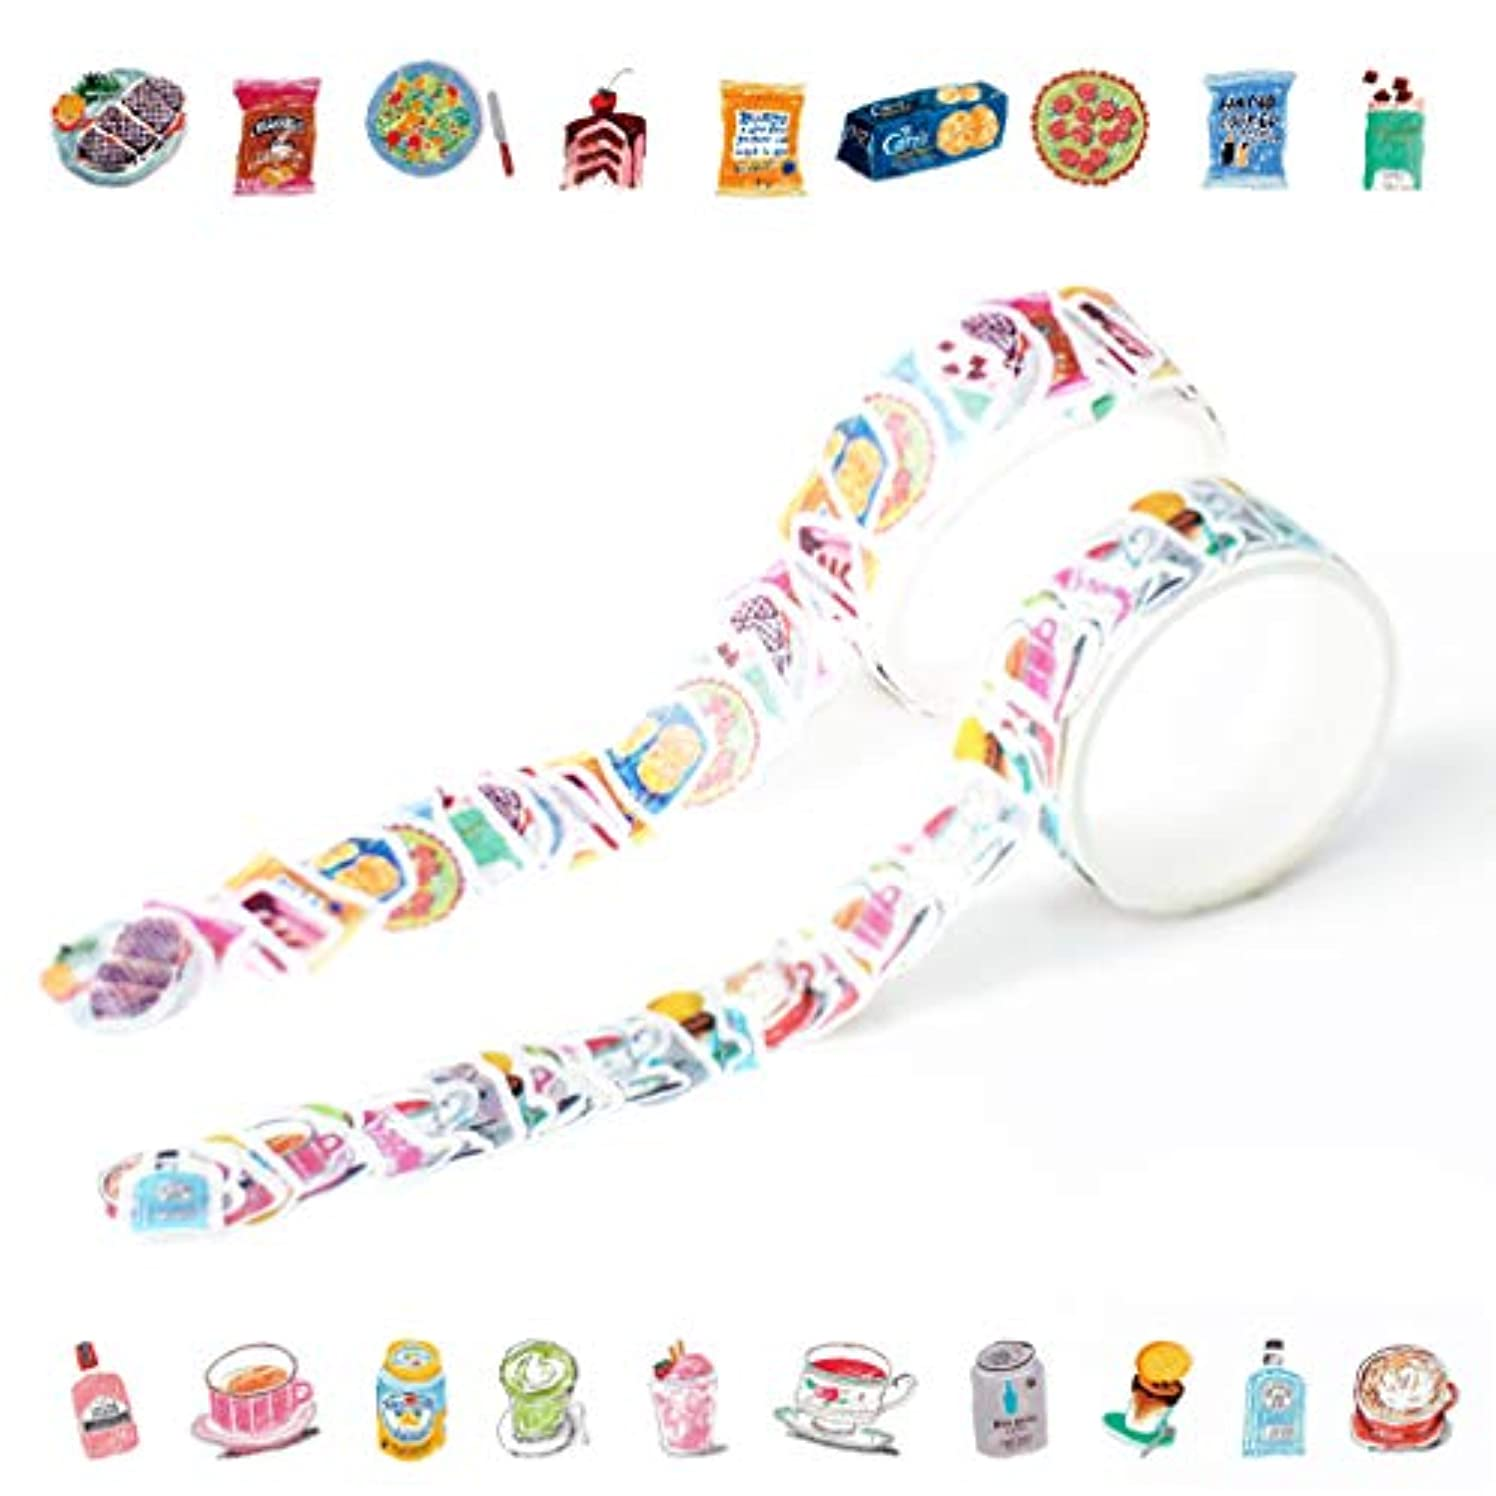 Yubbaex Floral Washi Tape Stickers Set Collage Petal Decorative Tape for Arts, DIY Crafts, Bullet Journal Supplies, Planners, Scrapbooking, Wrapping -2 Rolls/200 Pcs- (Appetite)